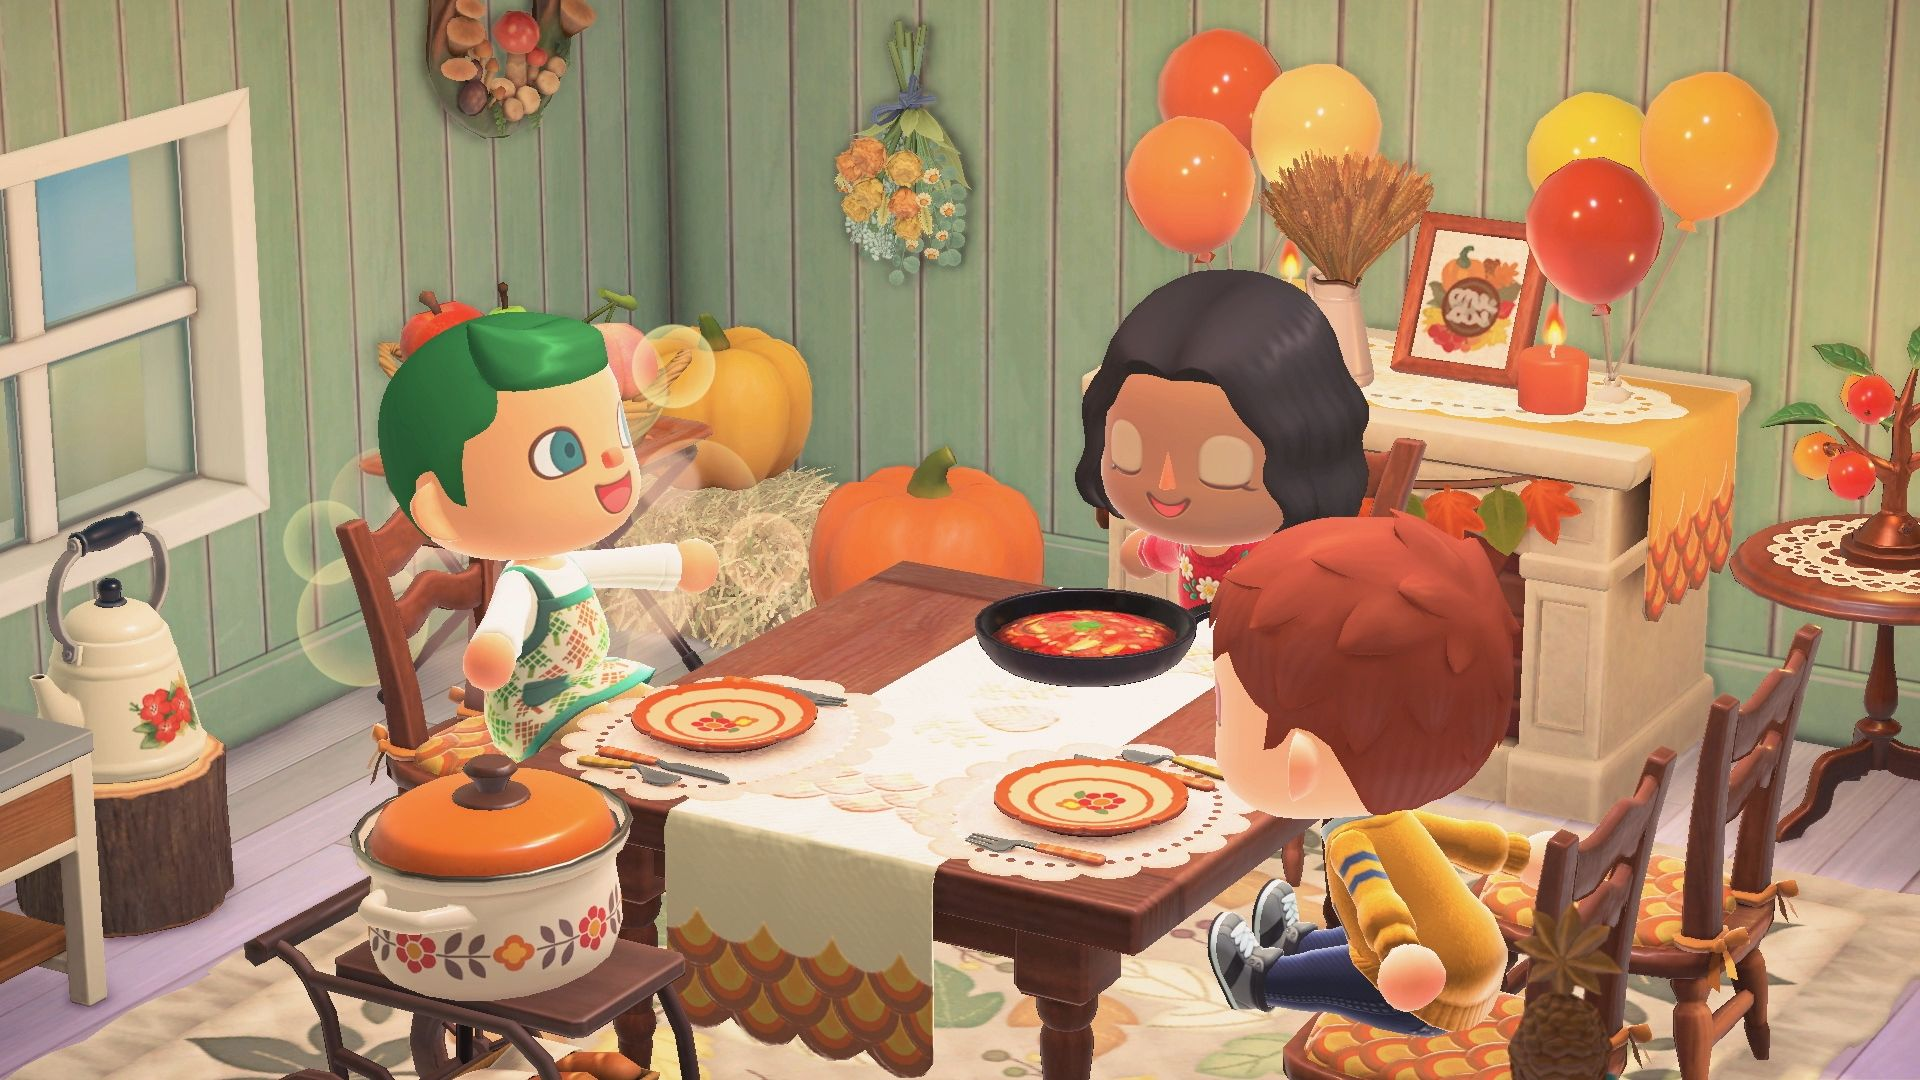 Animal Crossing New Horizons - Turkey Day